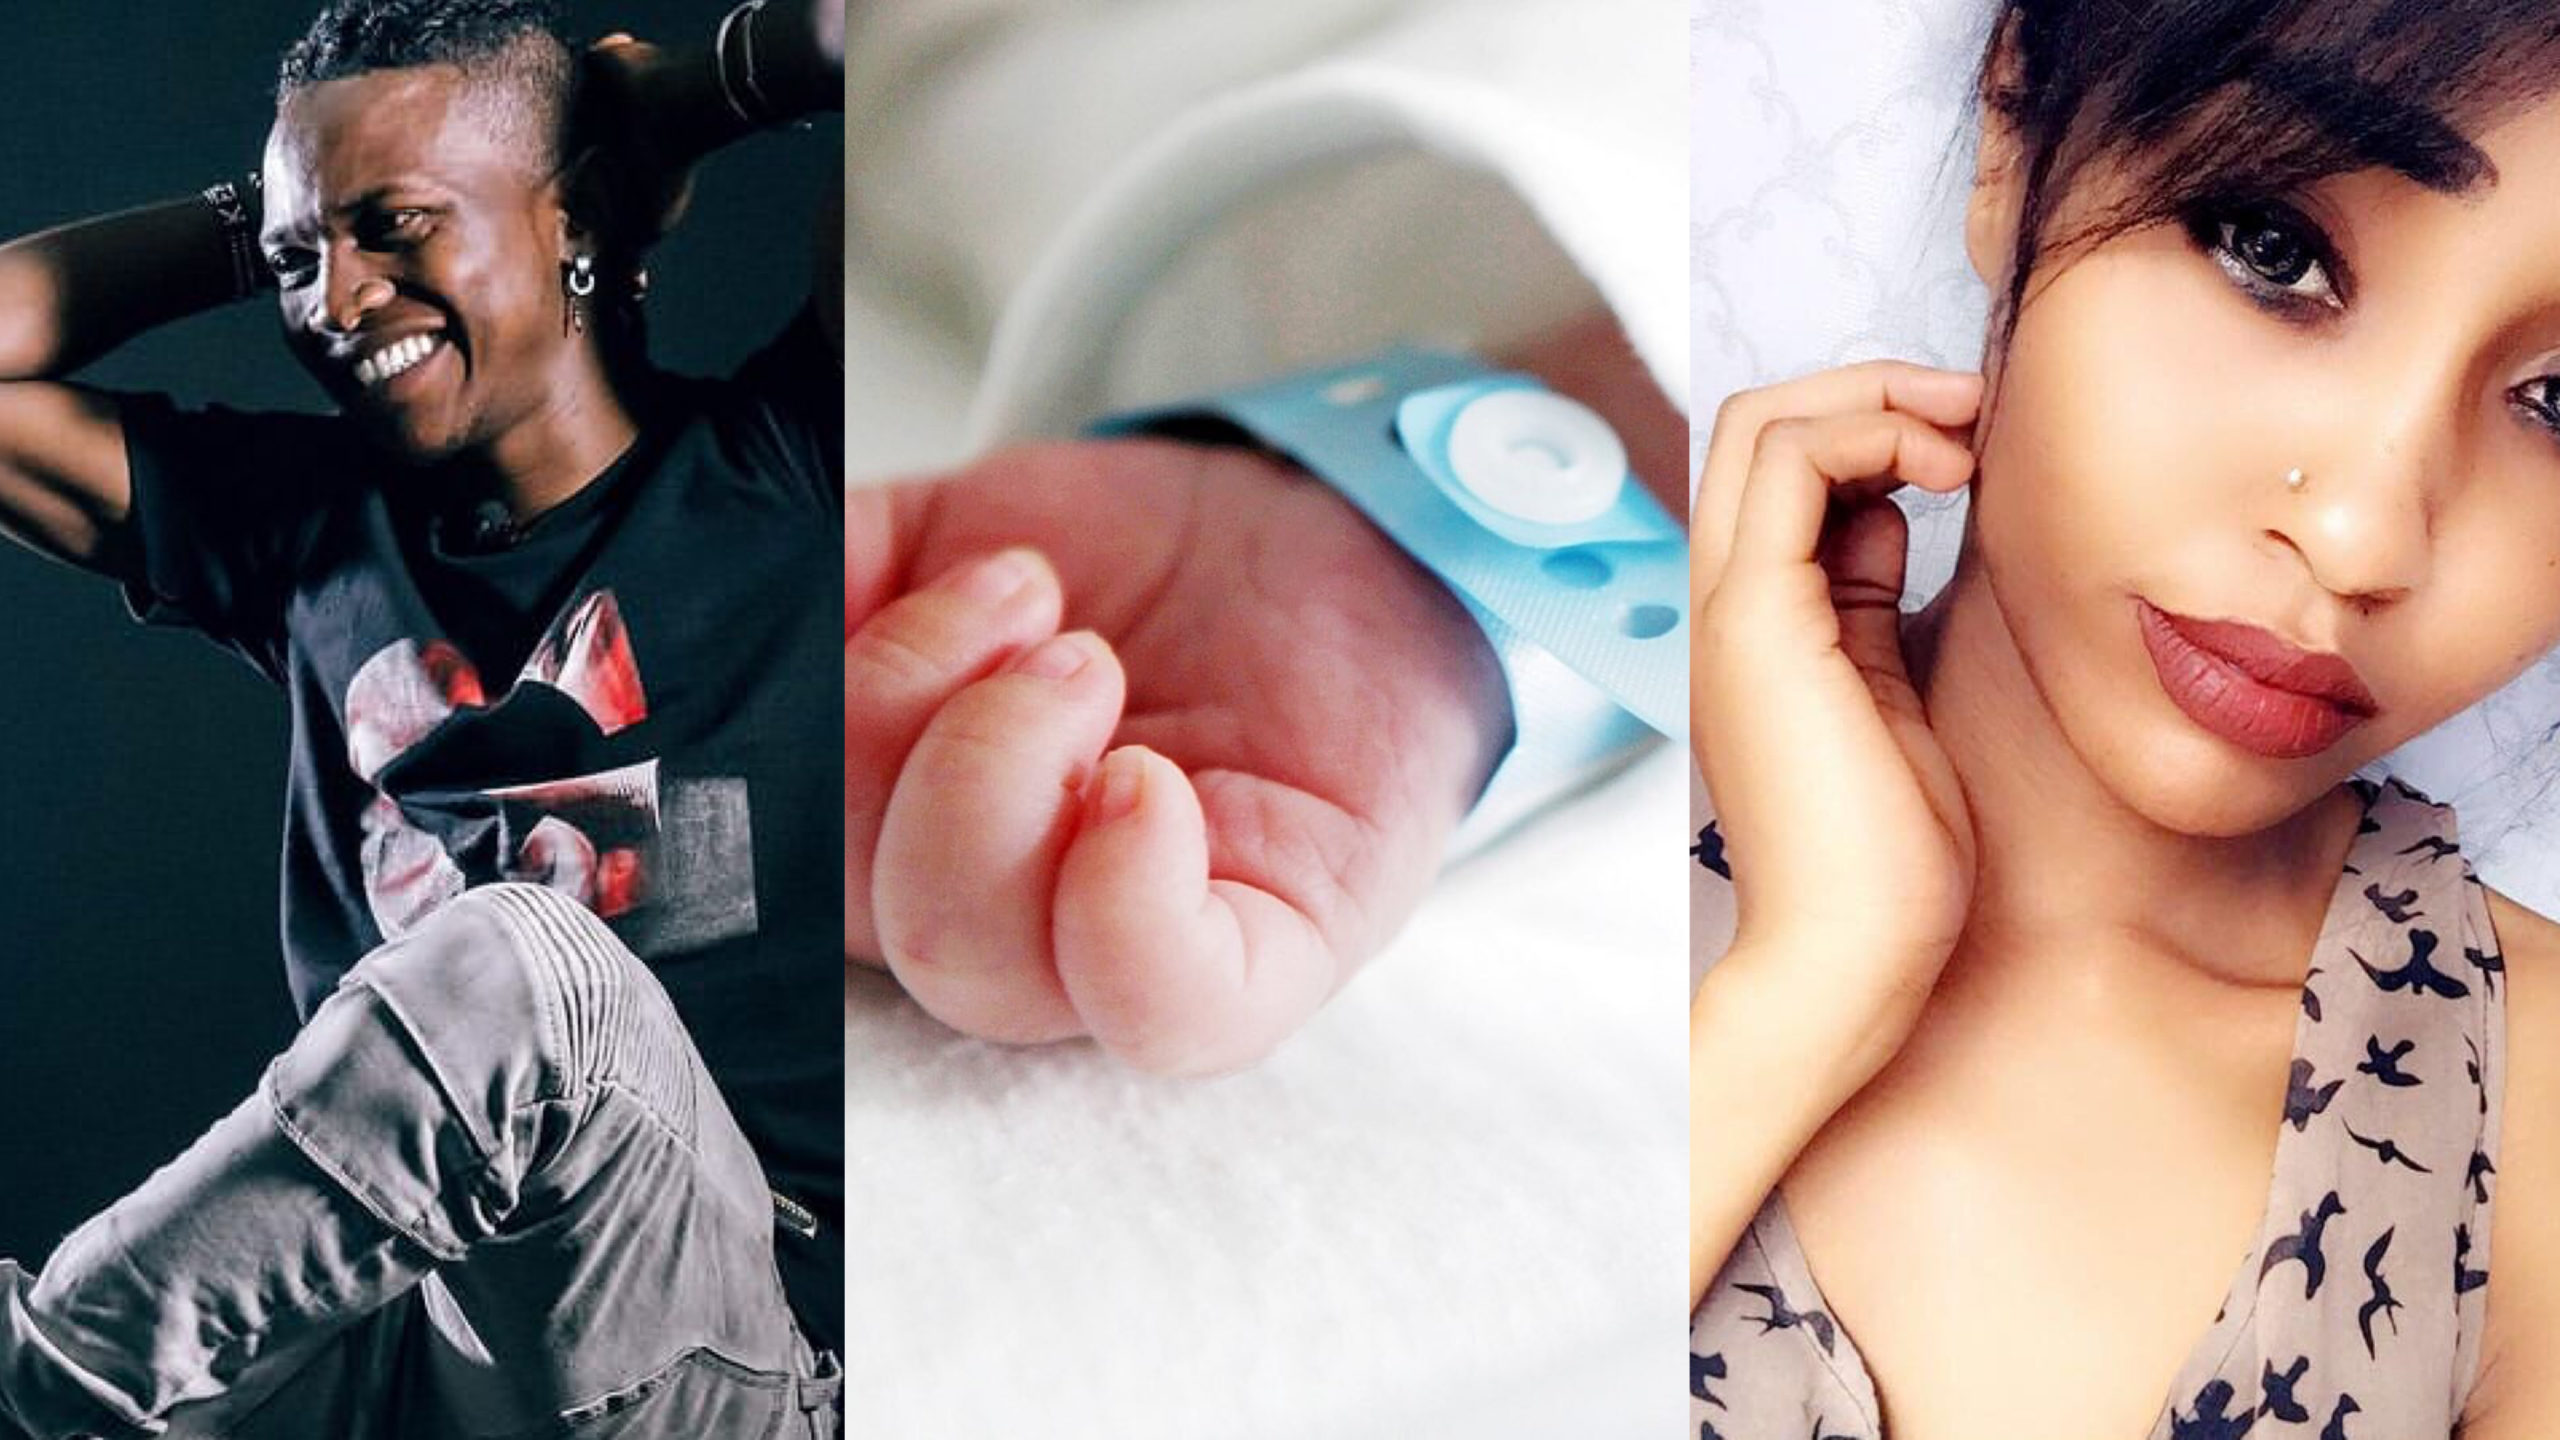 Mr Seed and 'side chick' welcome bouncing baby boy! (Photos)